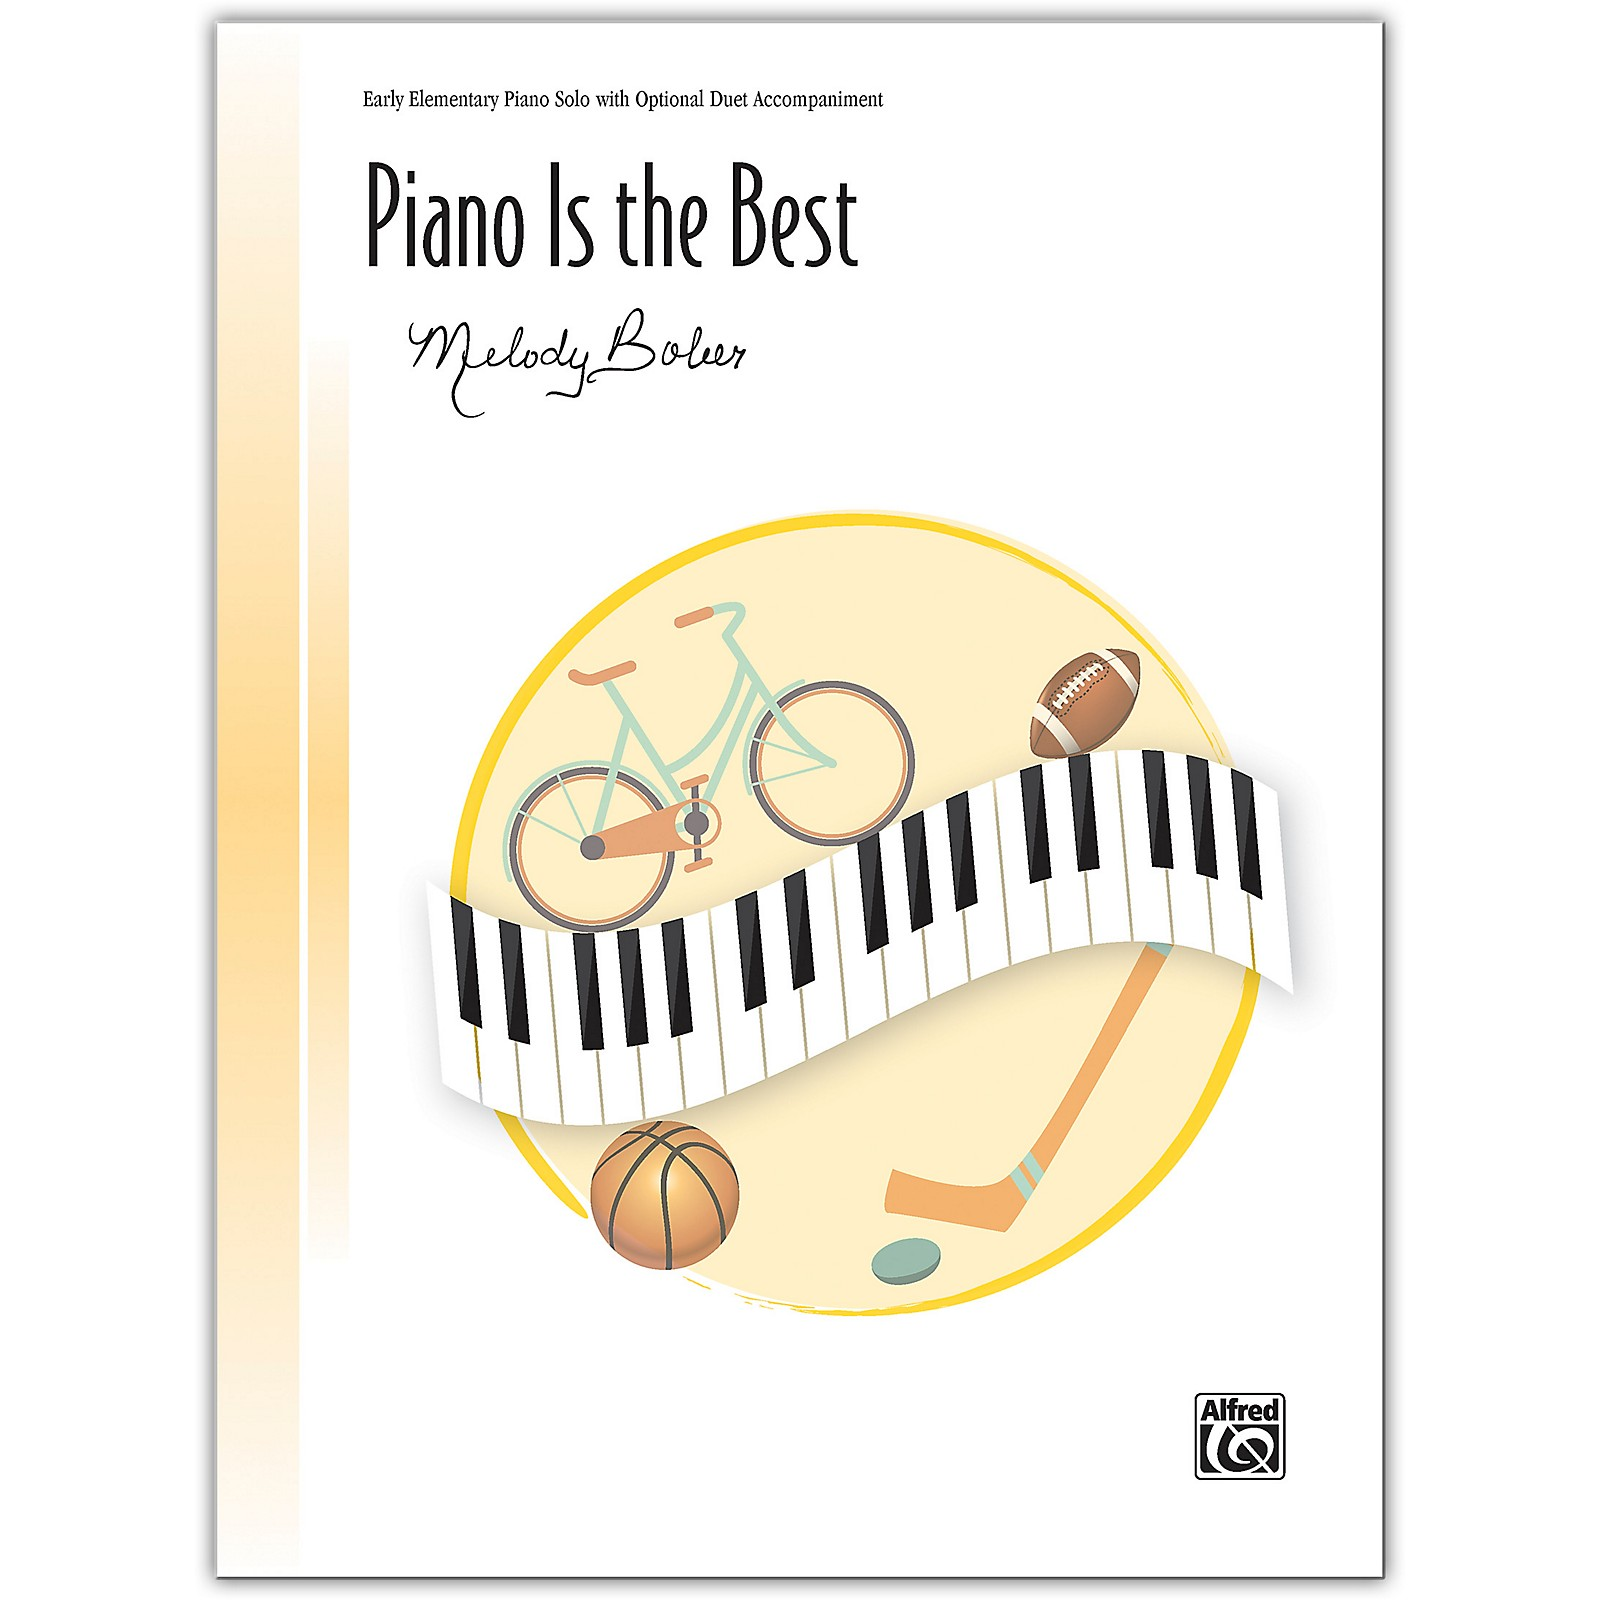 Alfred Piano Is the Best with Optional Duet Accompaniment Early Elementary